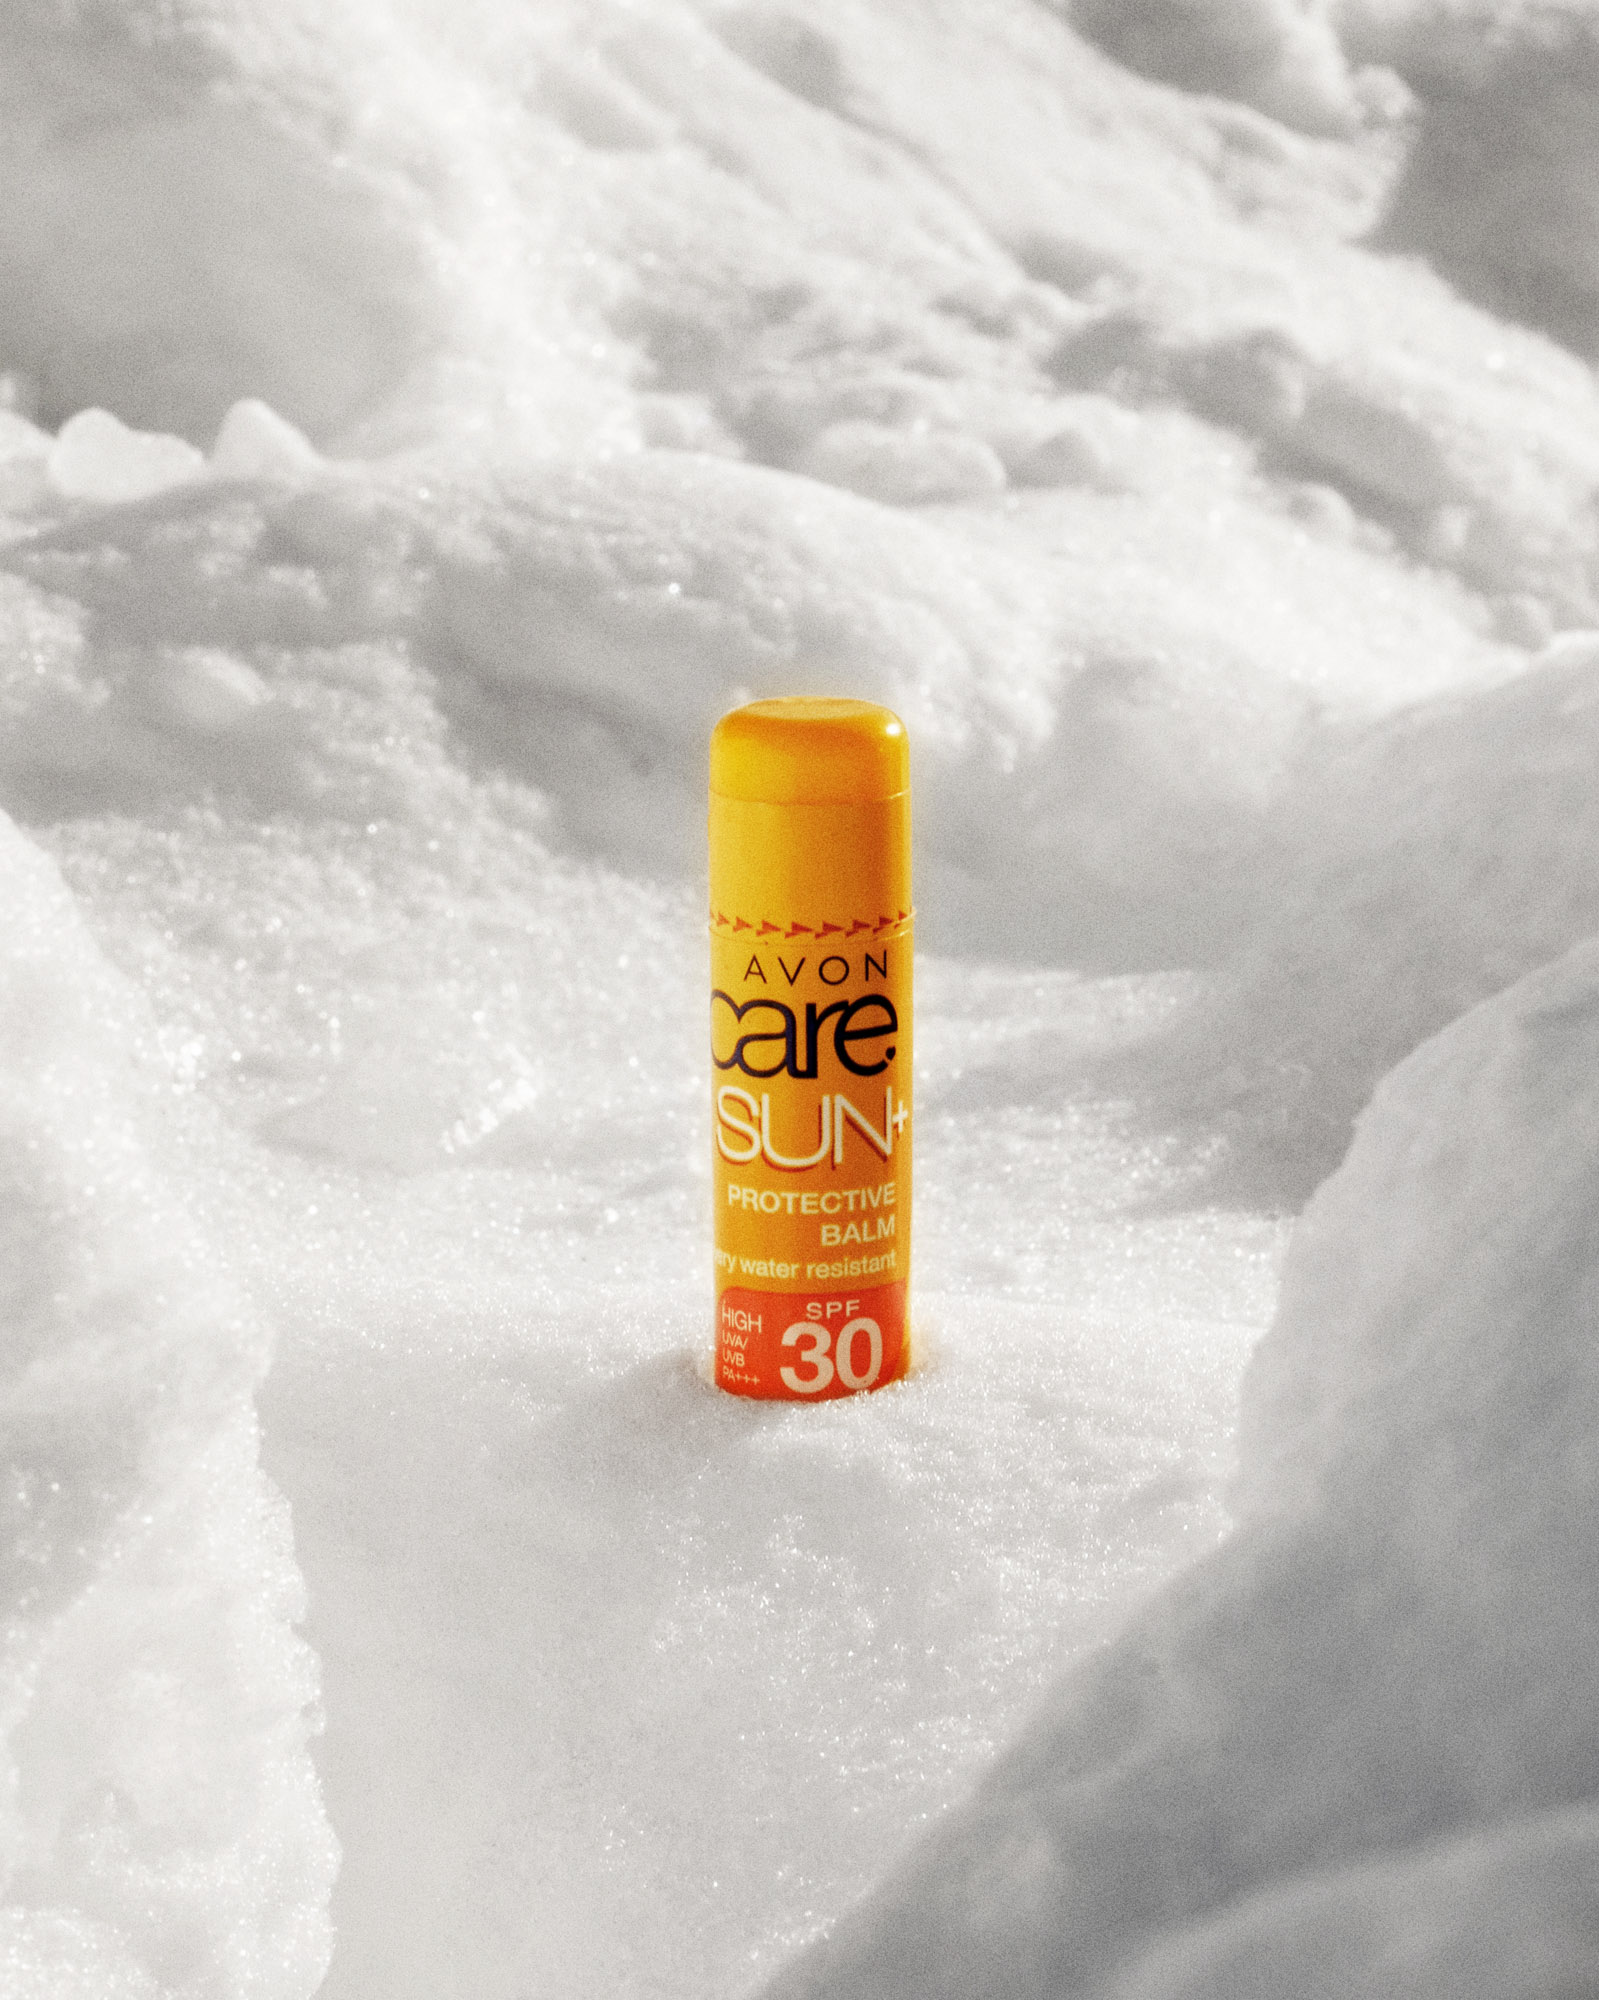 Protect your lips from harmful rays - Your lips are sensitive to sun damage too and an SPF lip balm is a really important factor in looking after yourself in a winter environment. With a moisturising balm, you might think you only need either a hydrating lip balm or a sun lip balm, but we really recommend taking the two, and for a few grams, this isn't going to impact your load. Sunburnt lips can be extremely painful and will significantly deter your enjoyment of the experience.